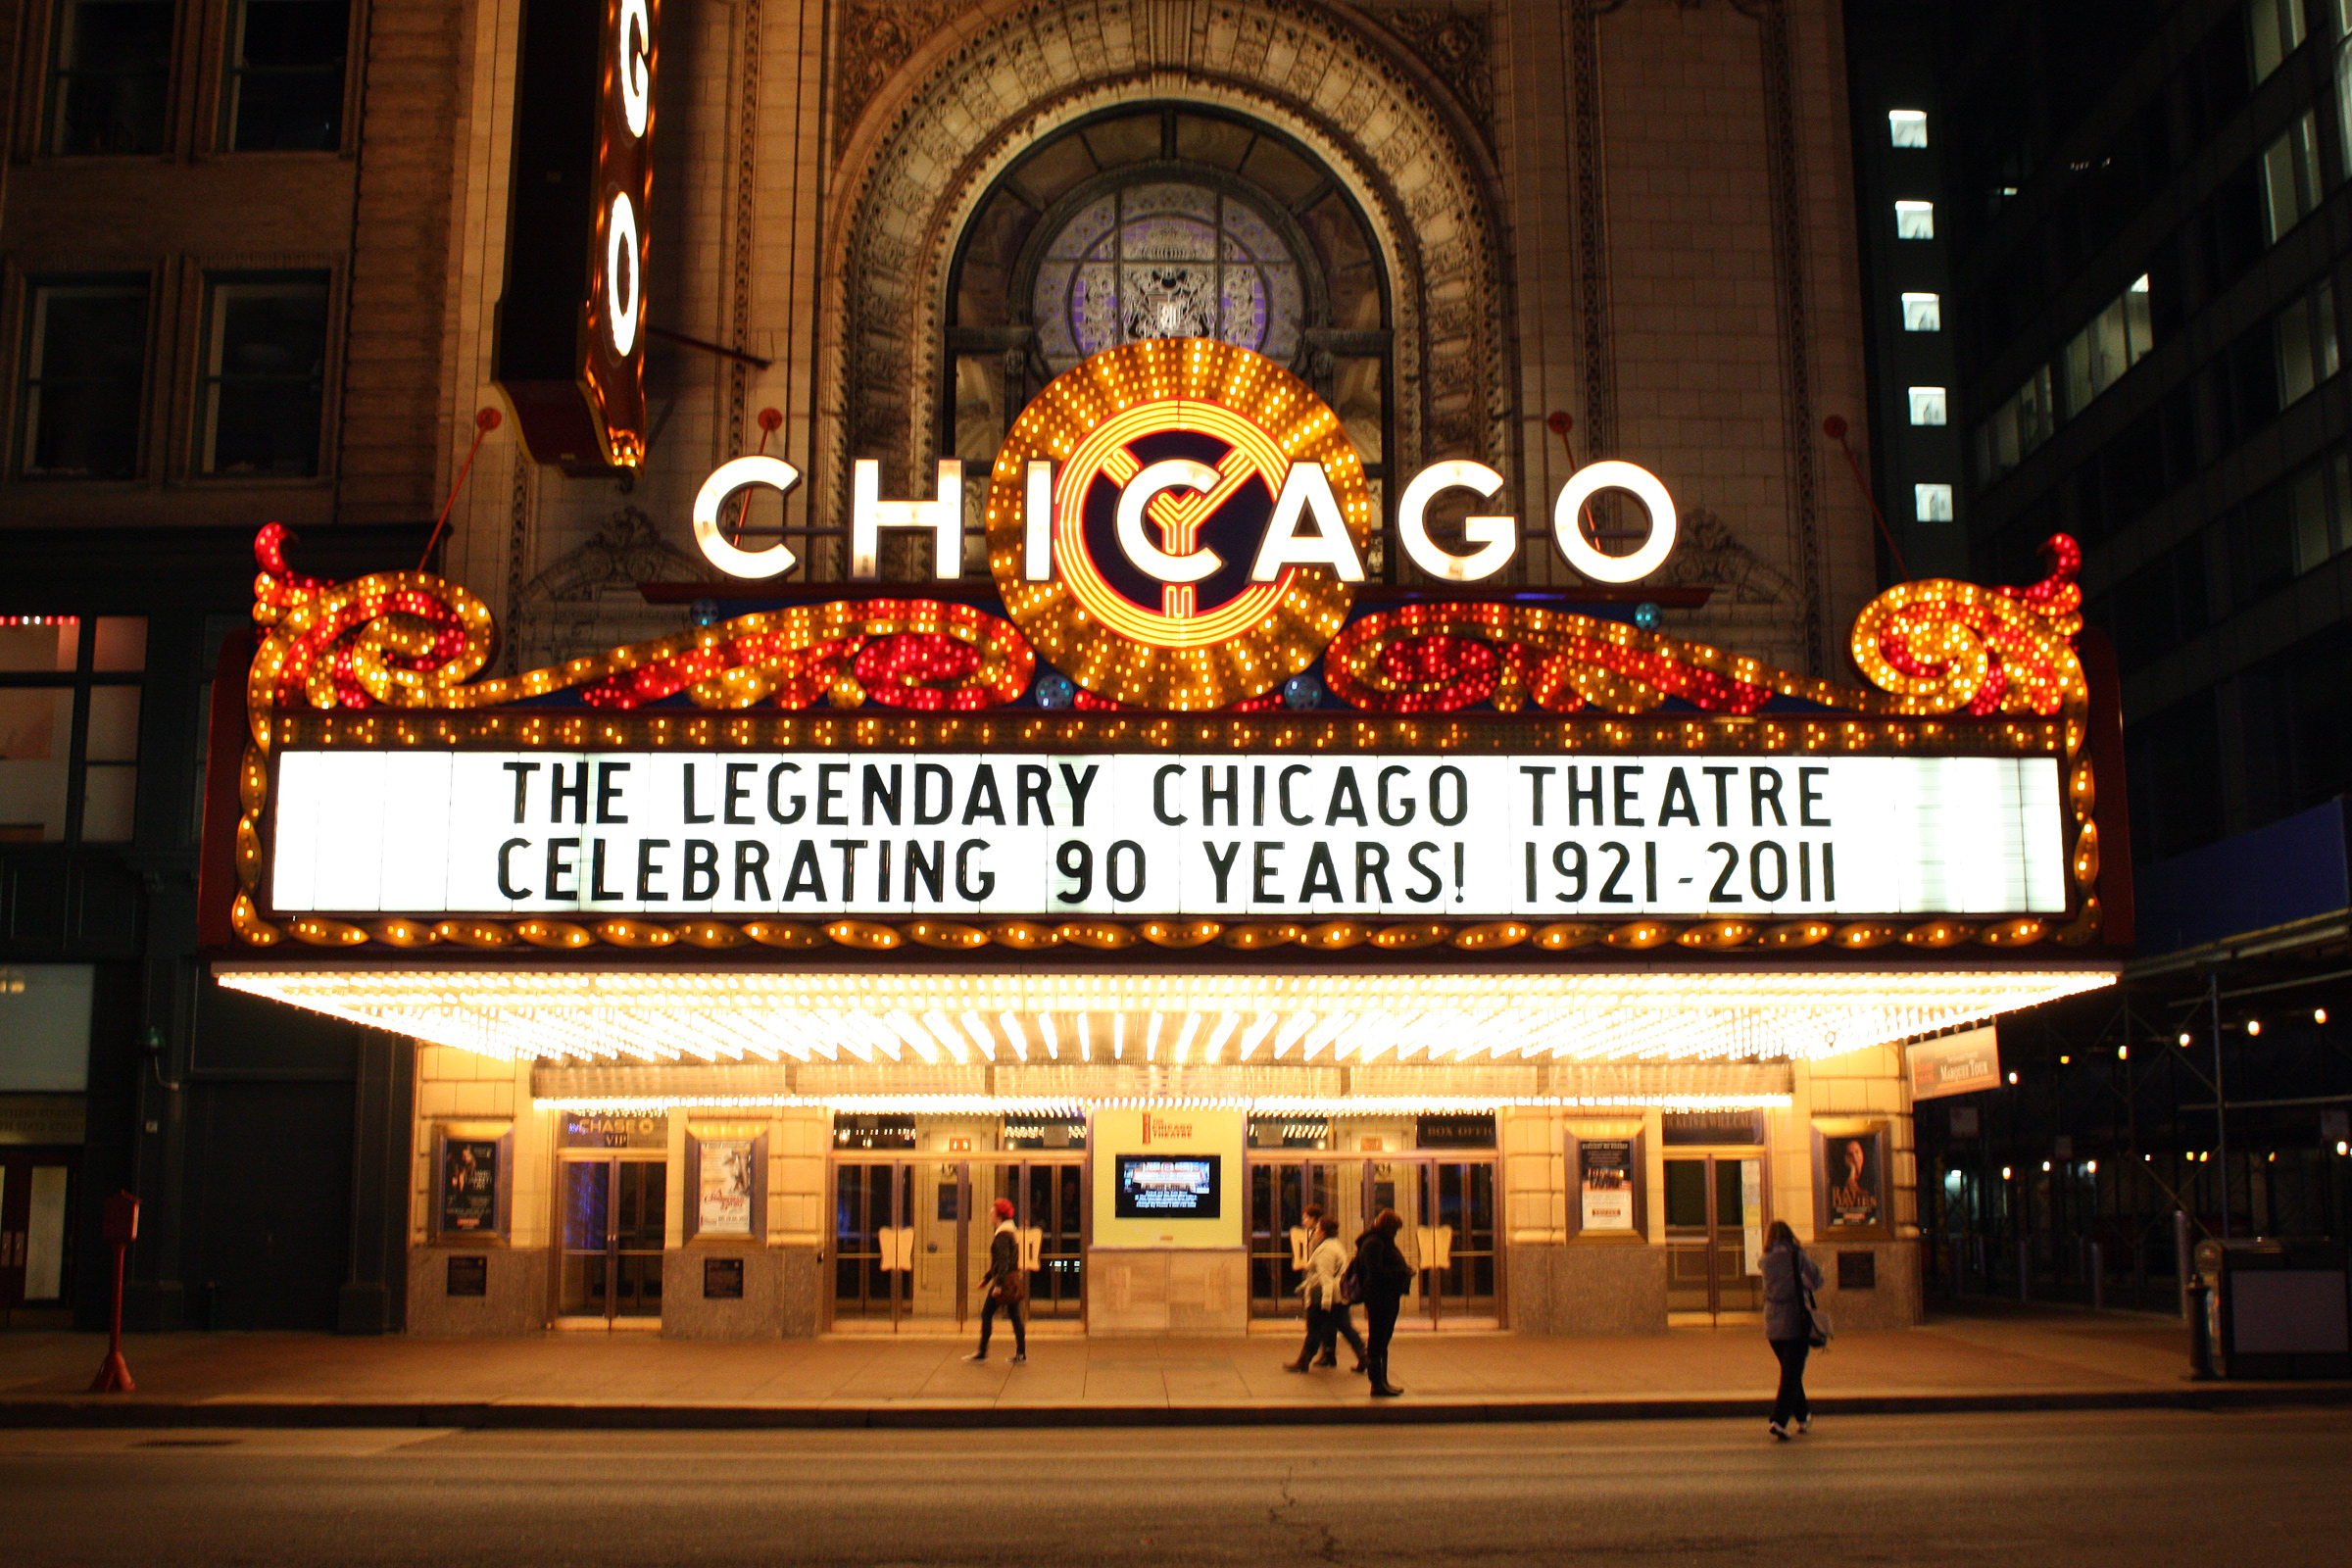 Things to Do in Chicago theatres